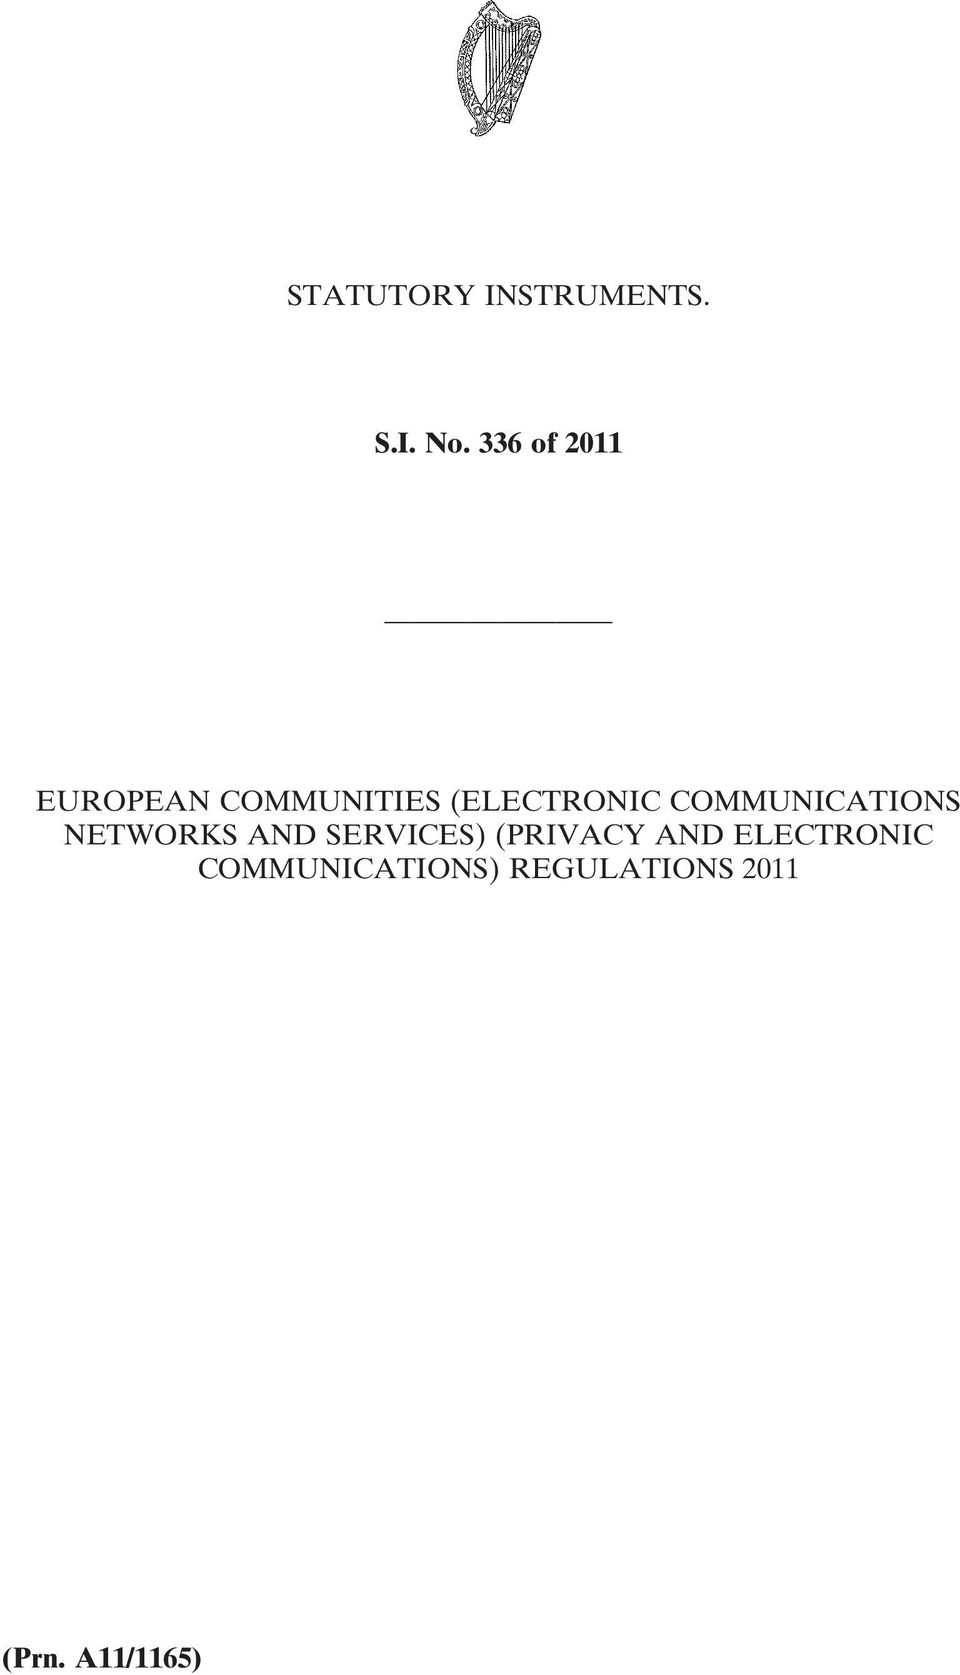 COMMUNICATIONS NETWORKS AND SERVICES) (PRIVACY